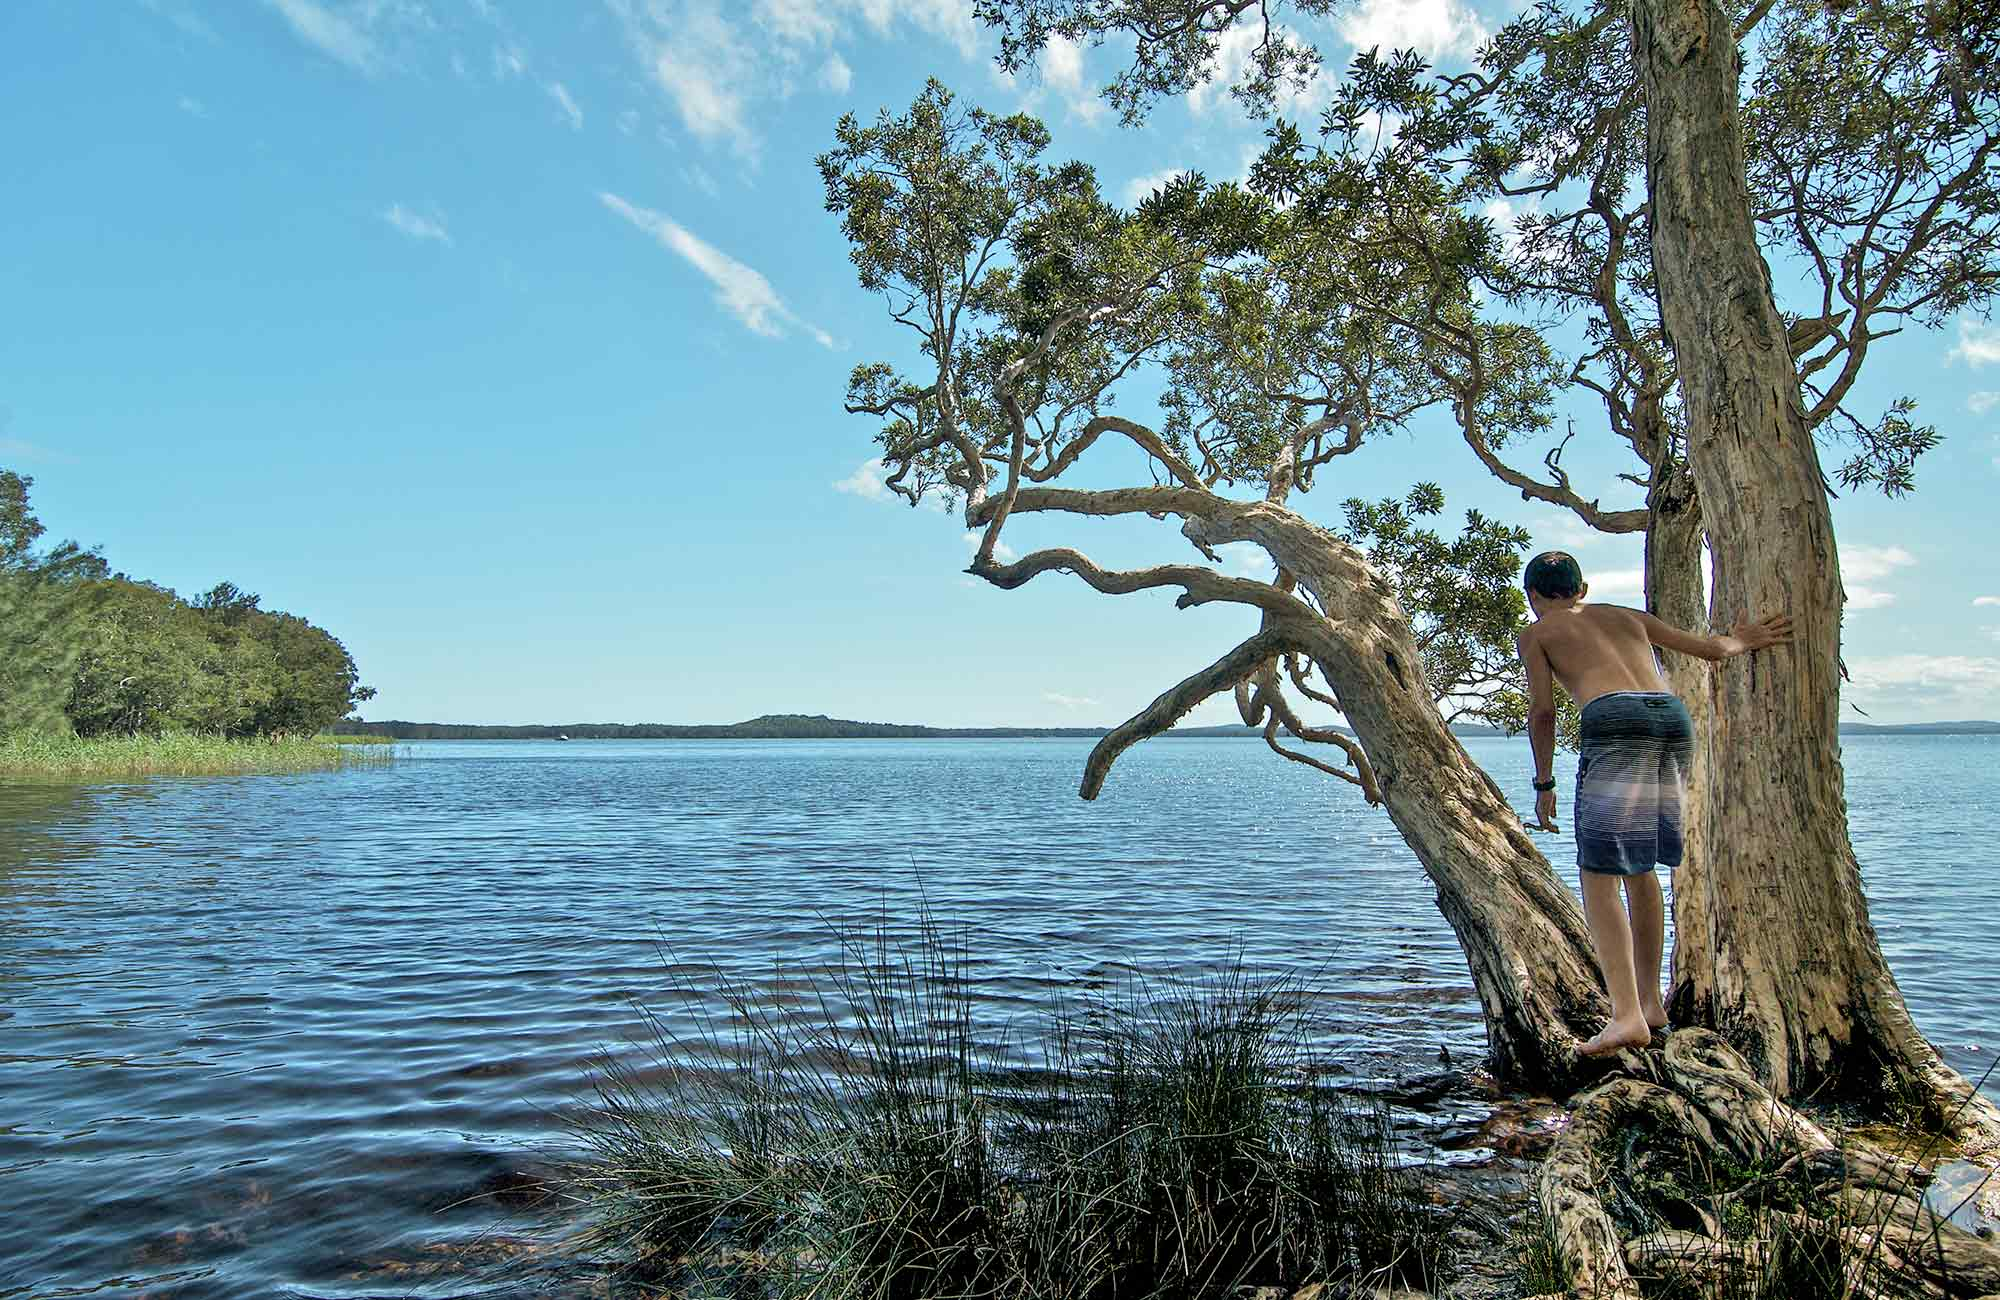 Wells campground, Myall Lakes National Park. Photo: John Spencer/NSW Government